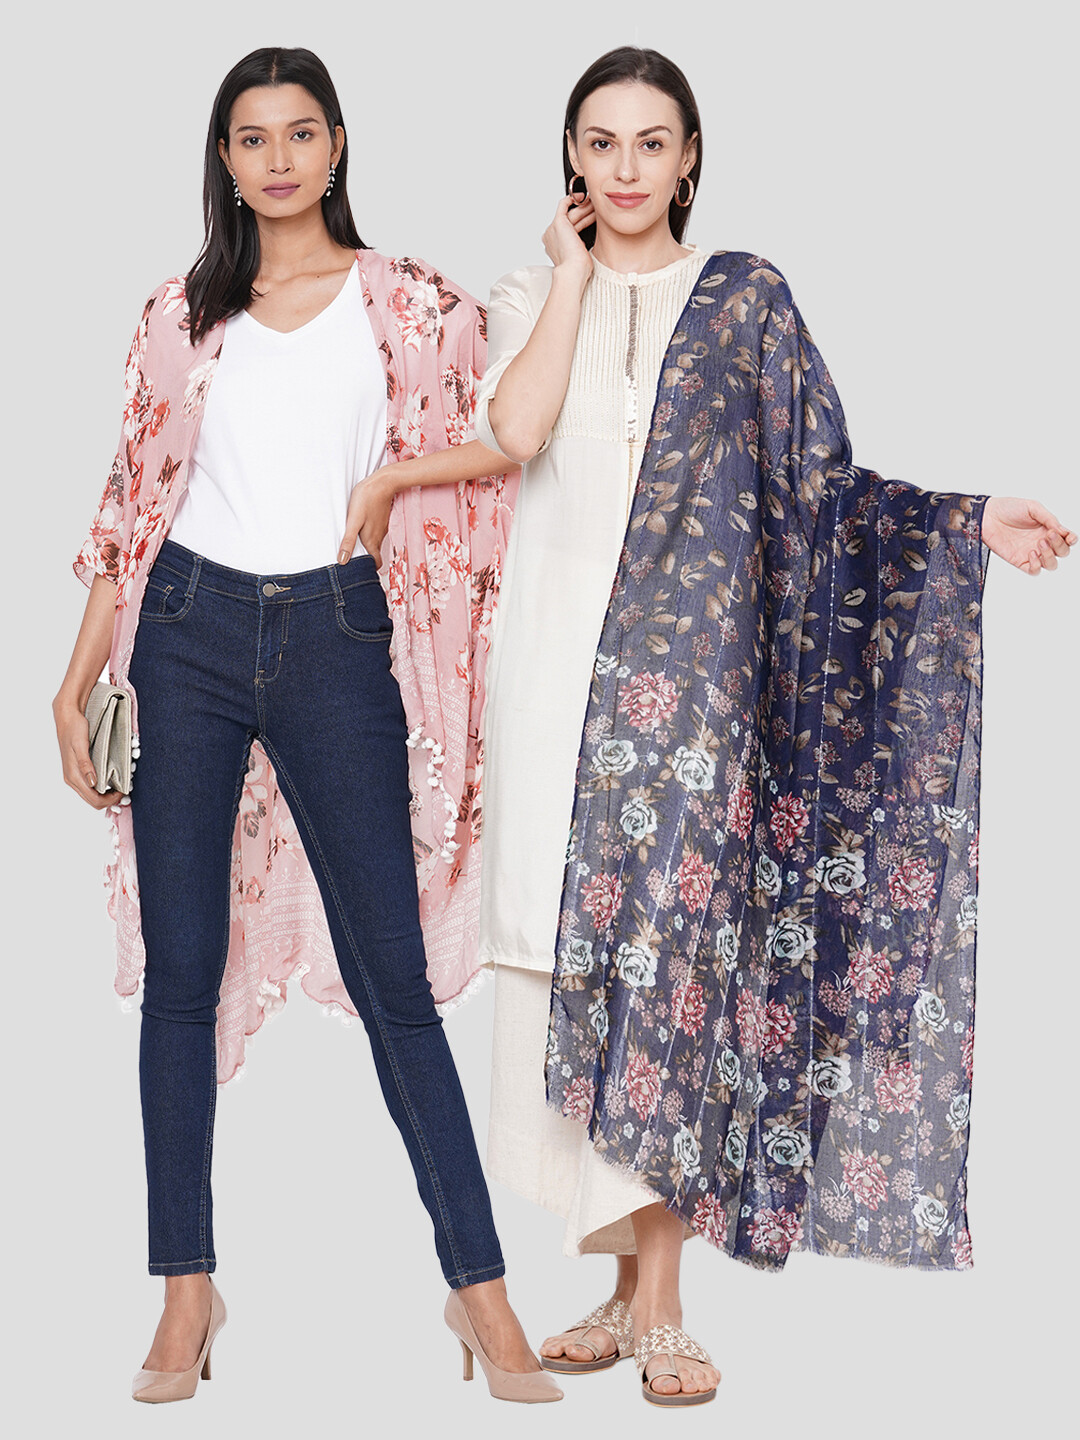 Stylist Printed Ponchos & Printed Scarf in sequins fabric - Combo offer